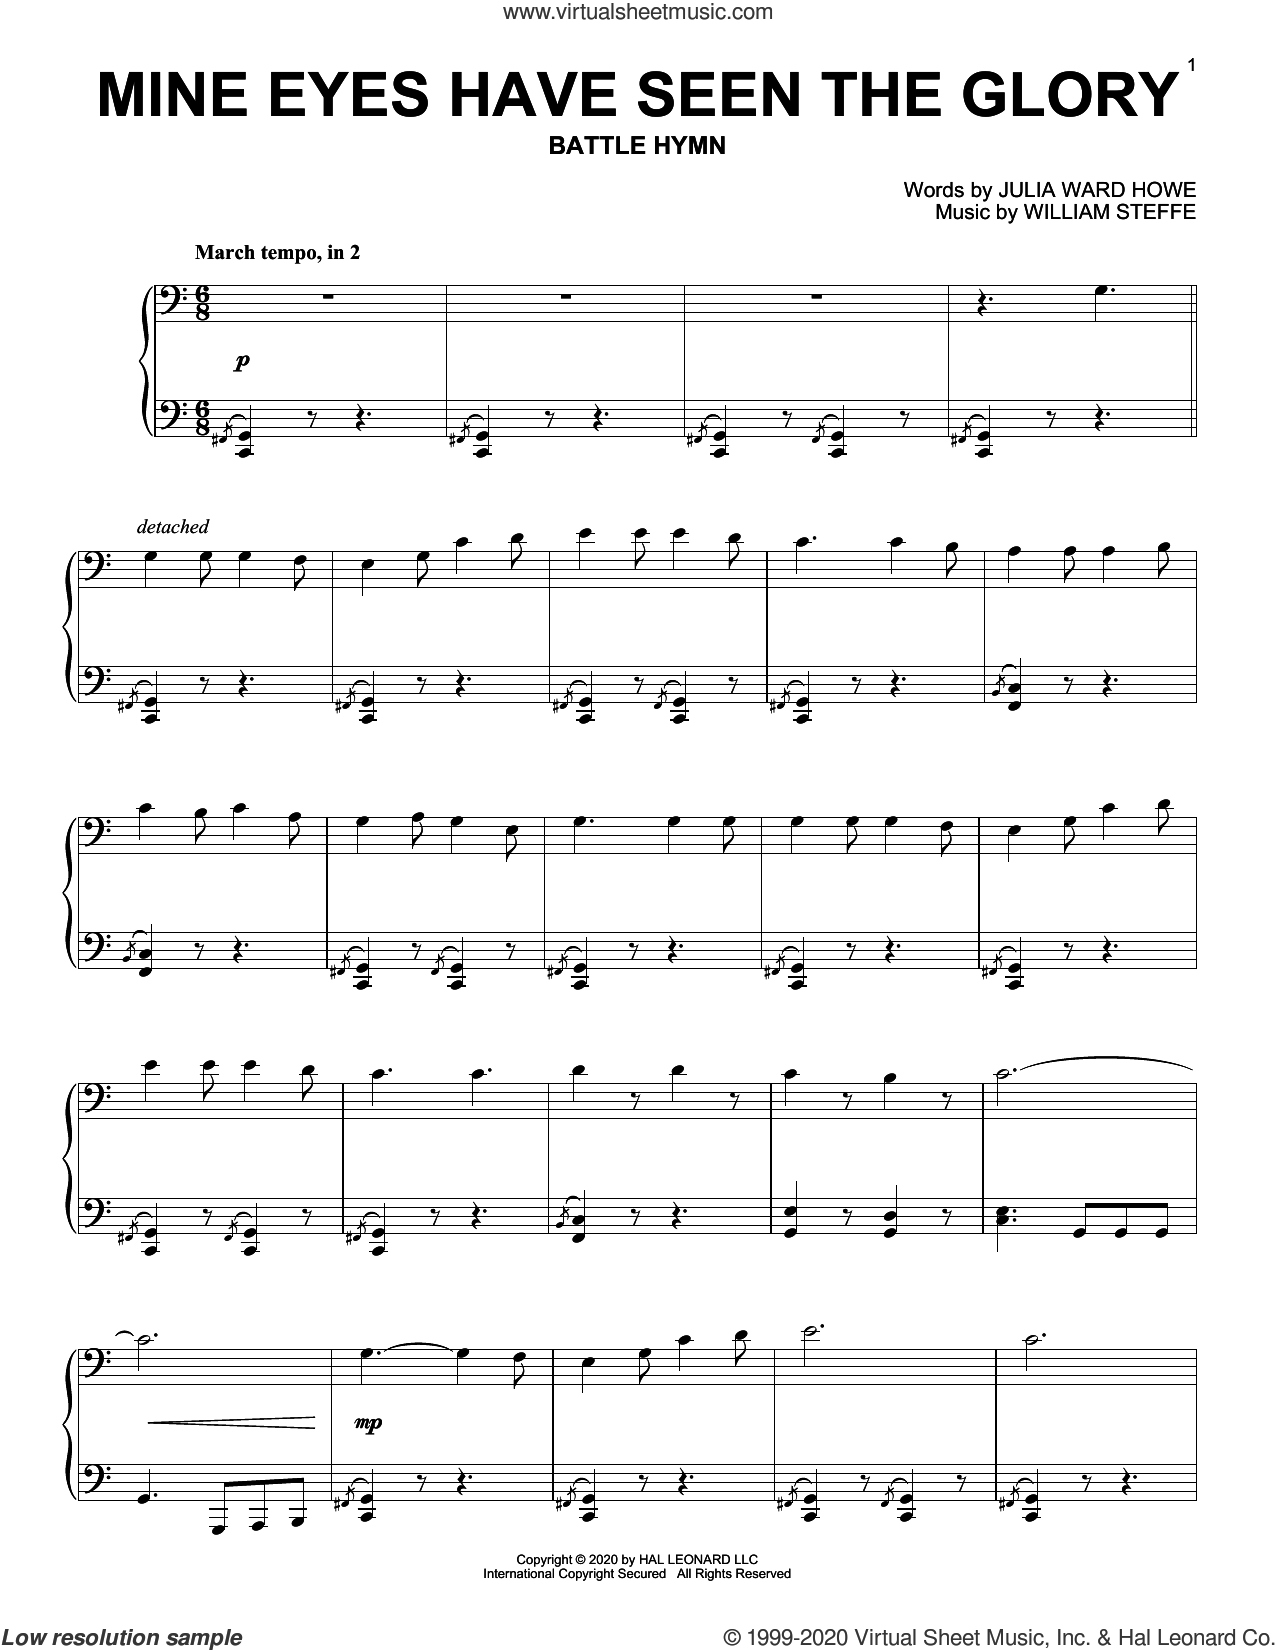 Mine Eyes Have Seen The Glory sheet music for piano solo by William Steffe, Julia Ward Howe and Julia Ward Howe & William Steffe, intermediate skill level